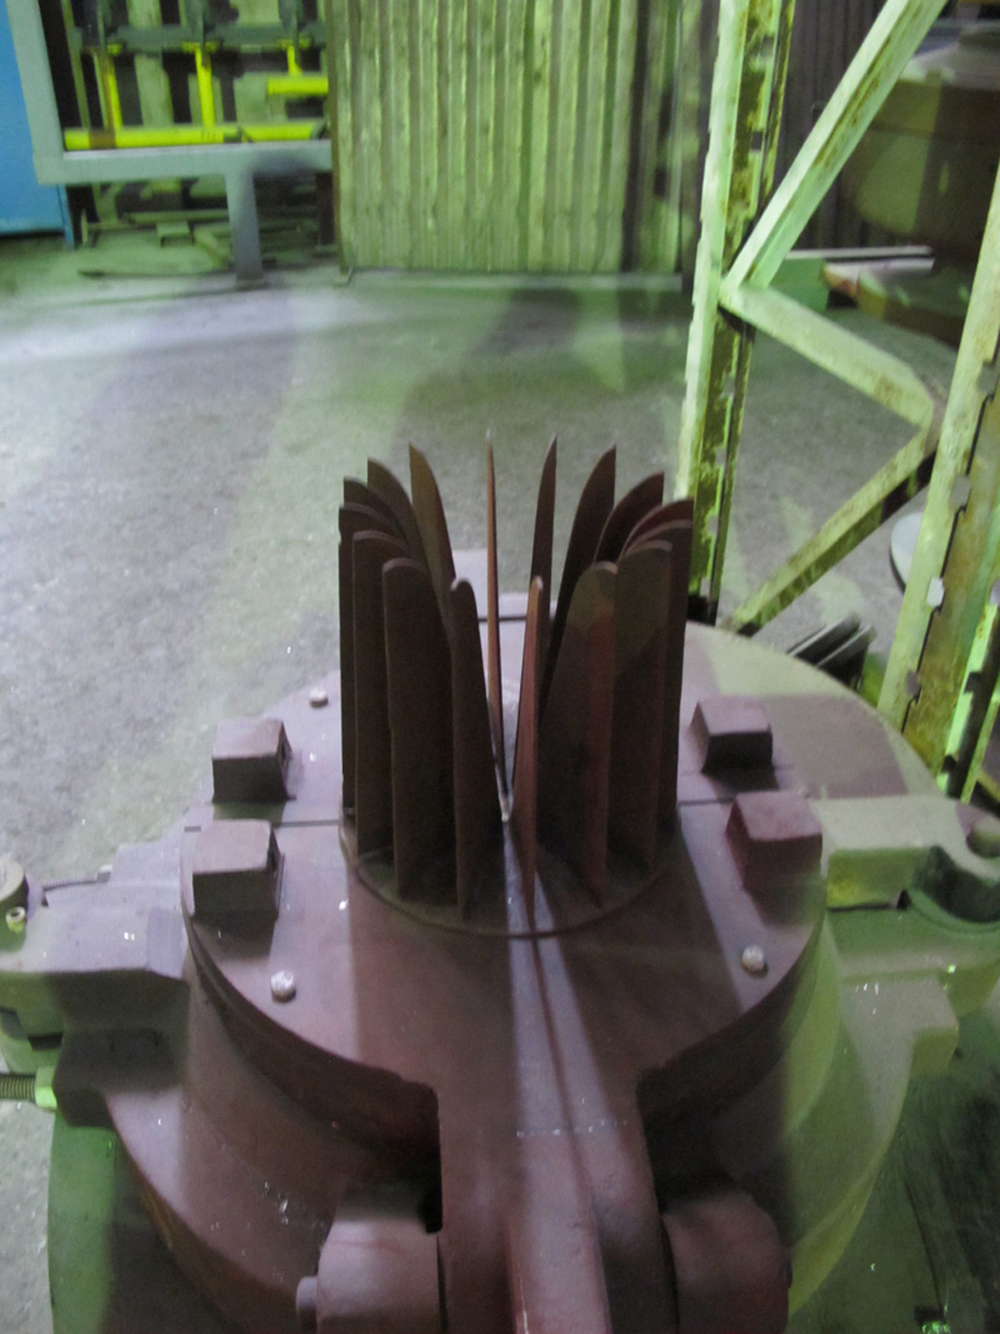 The original »Pre-mould« I found in the factory.